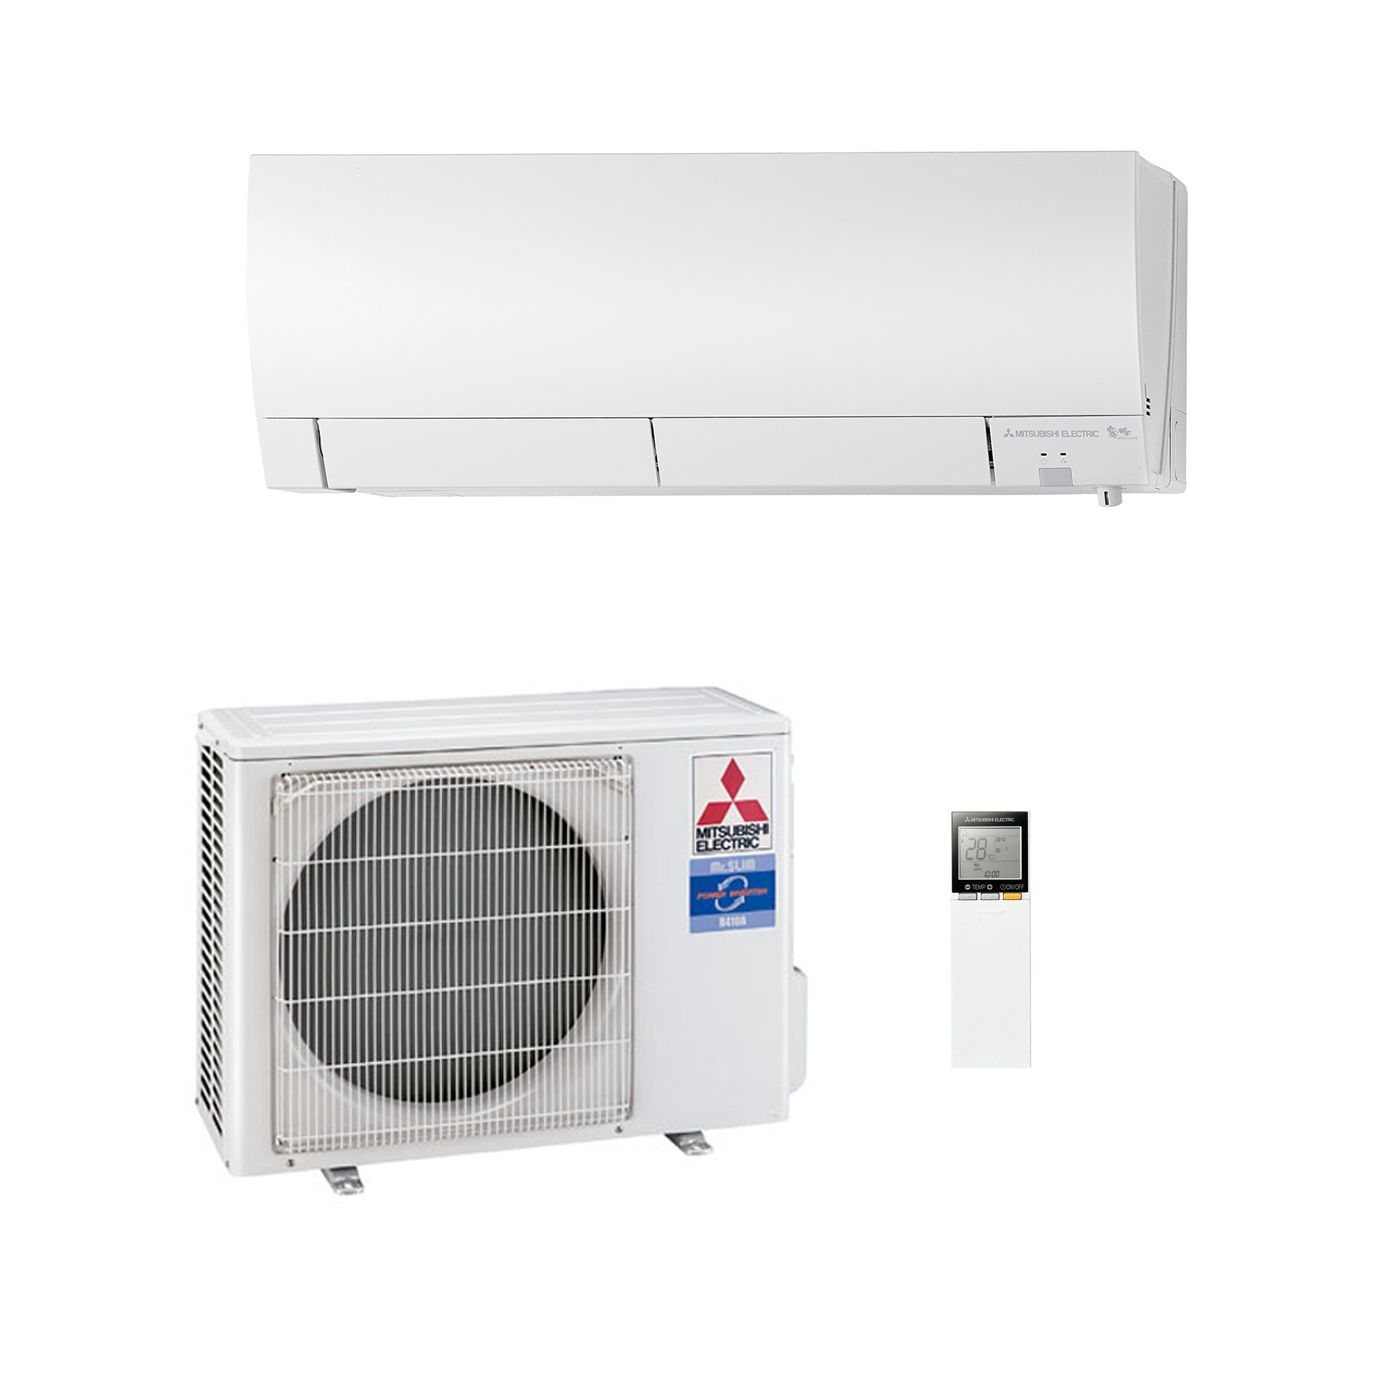 Mitsubishi Electric Air Conditioning MSZ FH25VE Wall Mounted 2.5Kw/9000Btu  Inverter Heat Pump A+++ 240V~50Hz